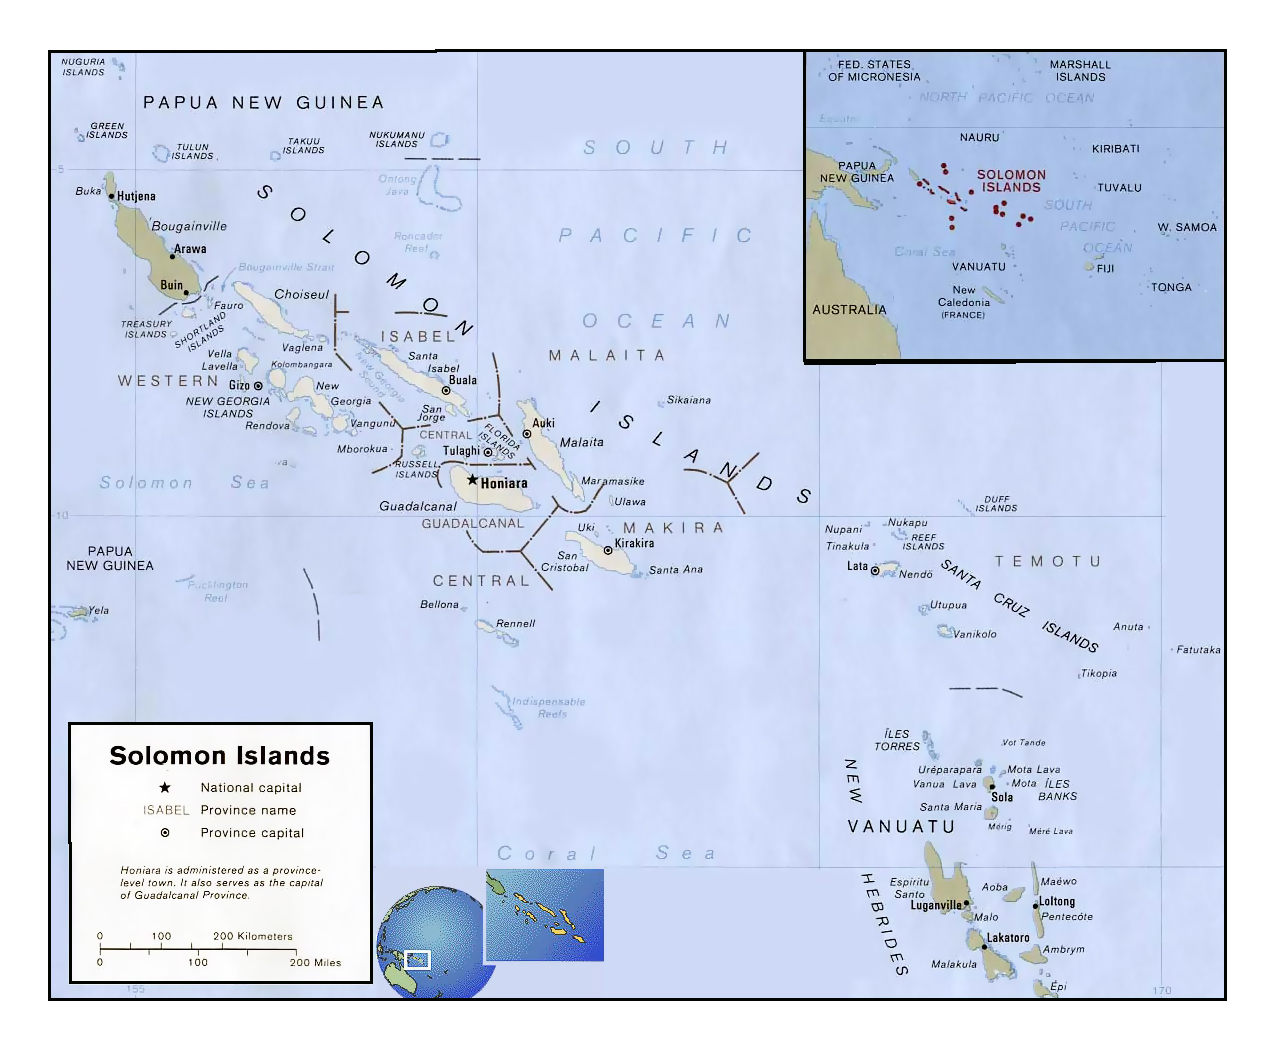 Detailed political and administrative map of Solomon Islands